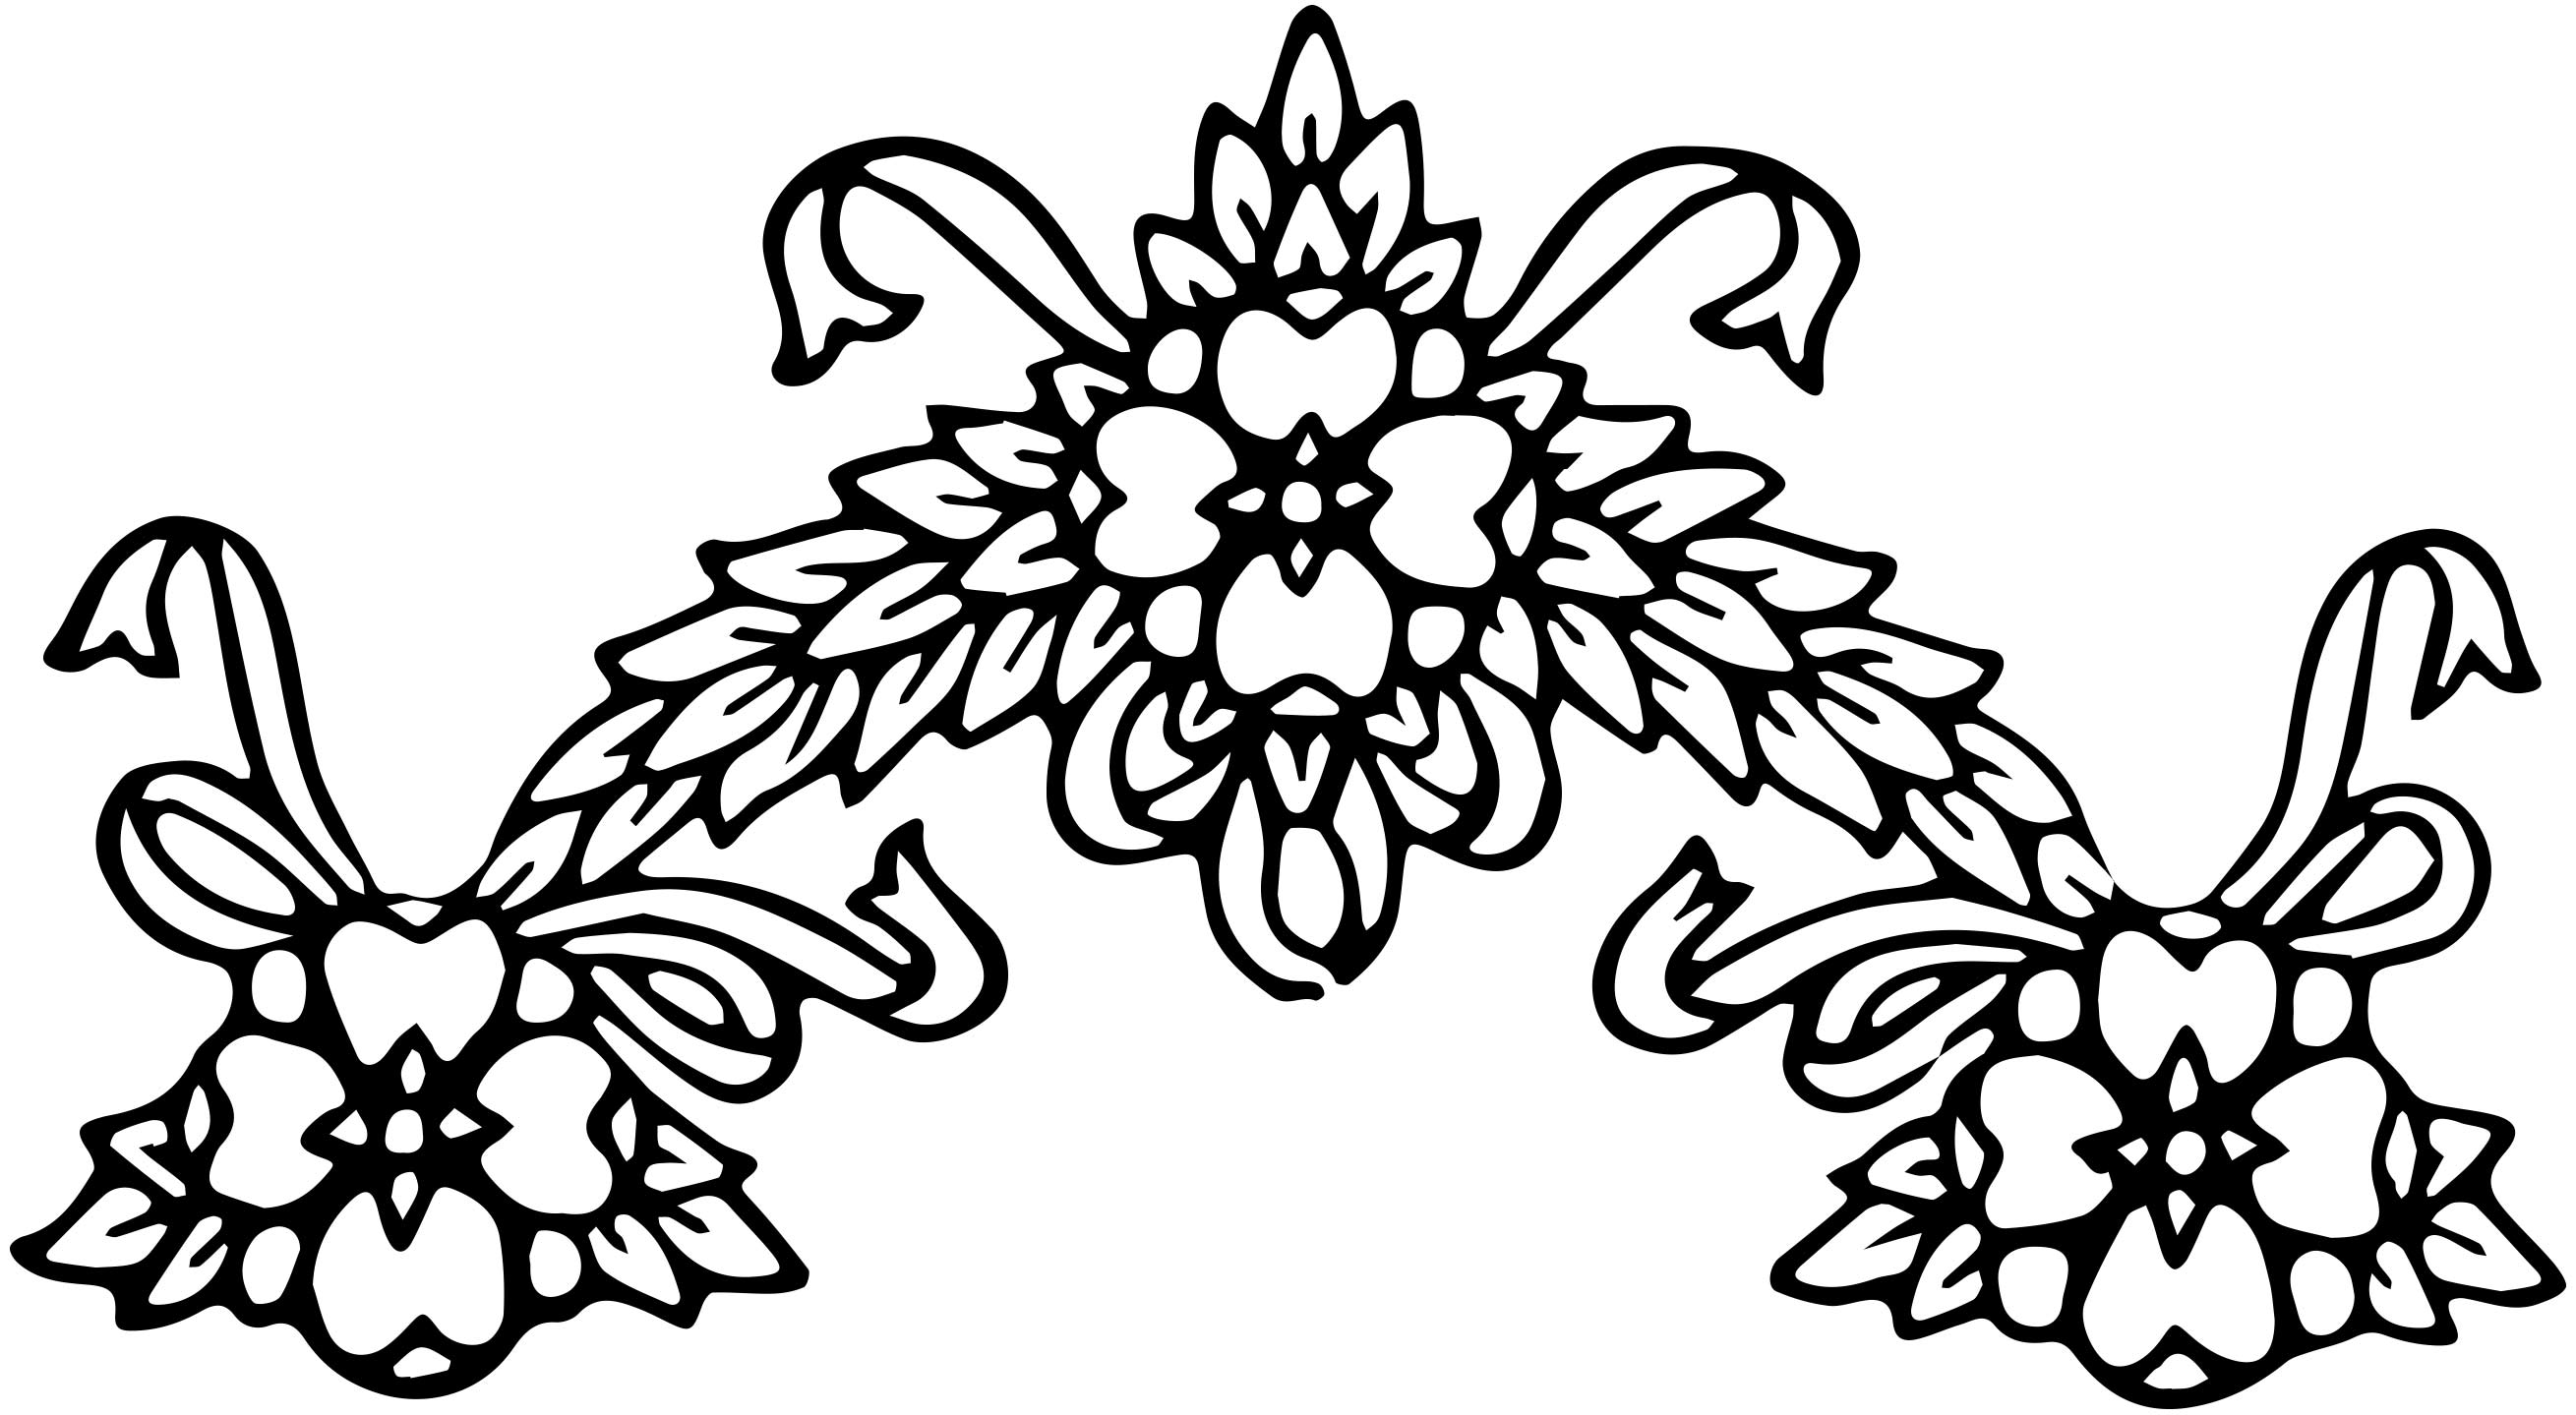 Line clipart floral Download Clip Free Art library